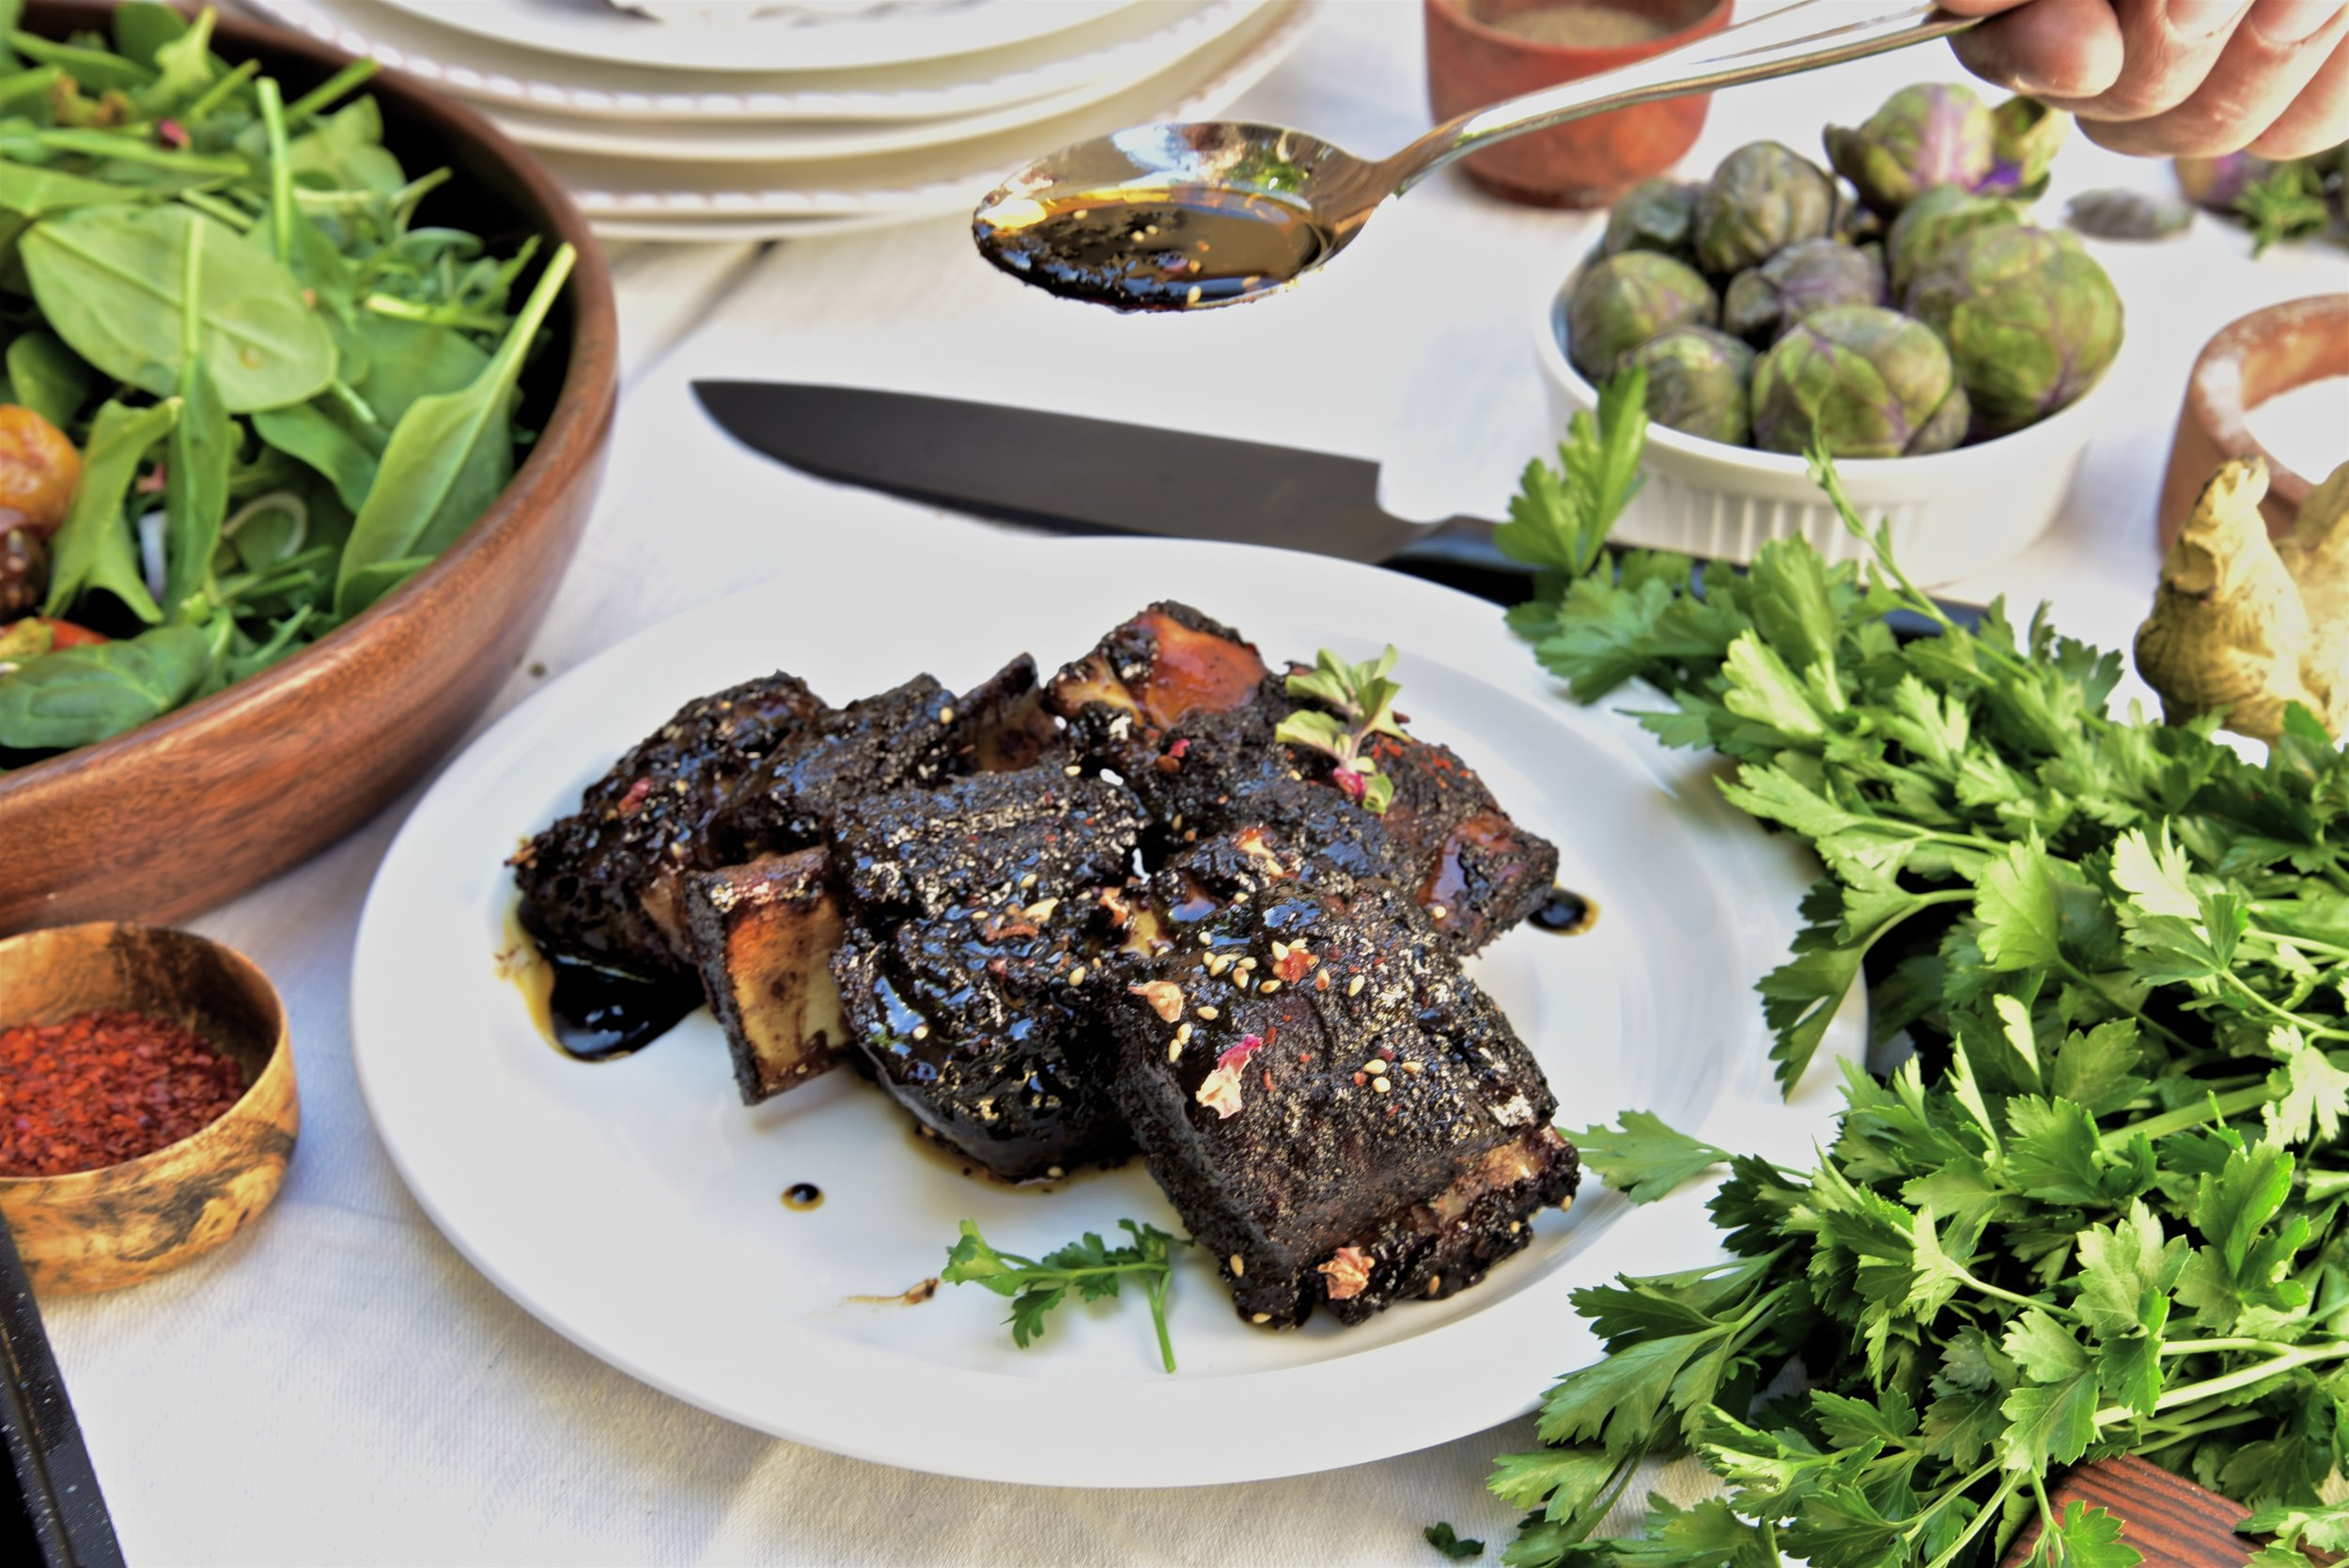 Dry rub ribs with a molasses chili paste glaze. It's even better than you might imagine.